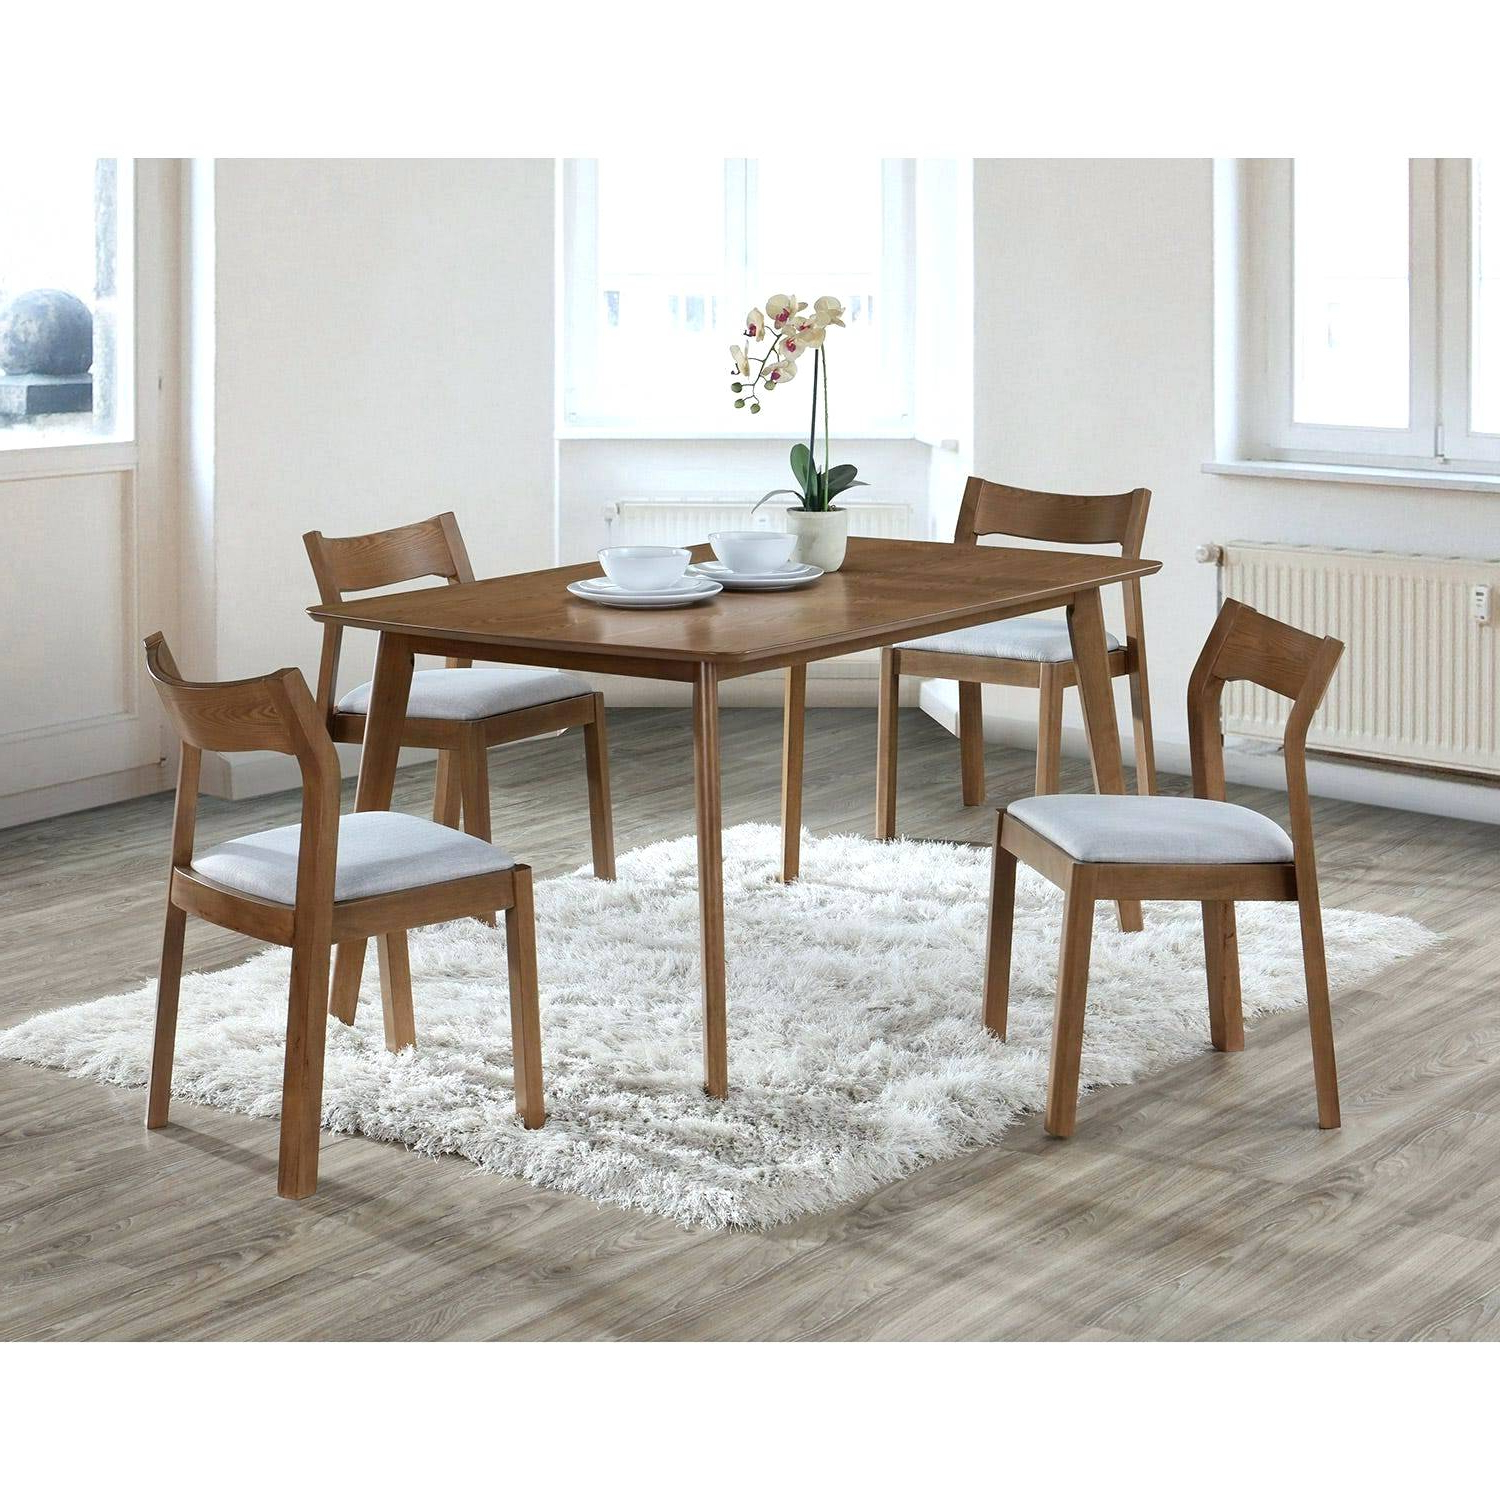 5 Piece Dining Table And Chairs – Heyricky In Fashionable Calla 5 Piece Dining Sets (Gallery 14 of 20)